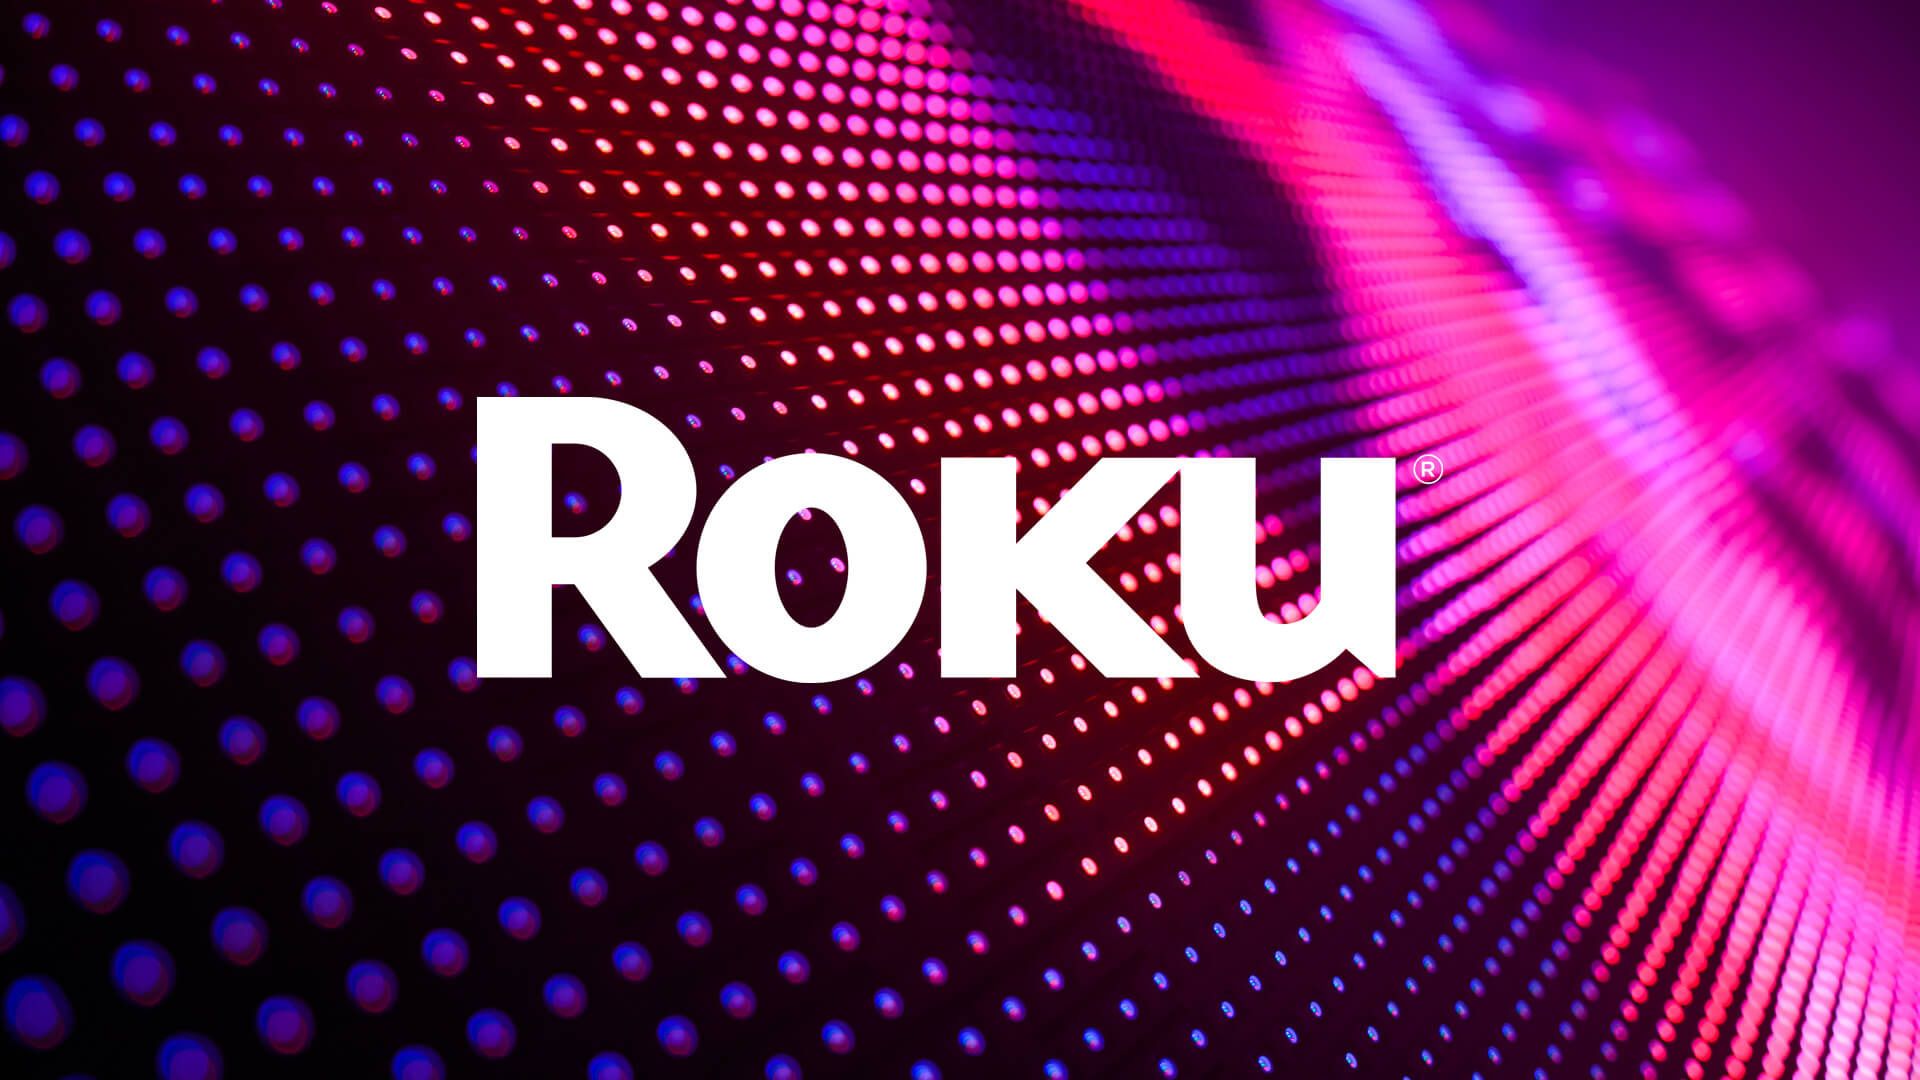 Roku's new Activation Insights tool targets viewers who have shifted to streaming